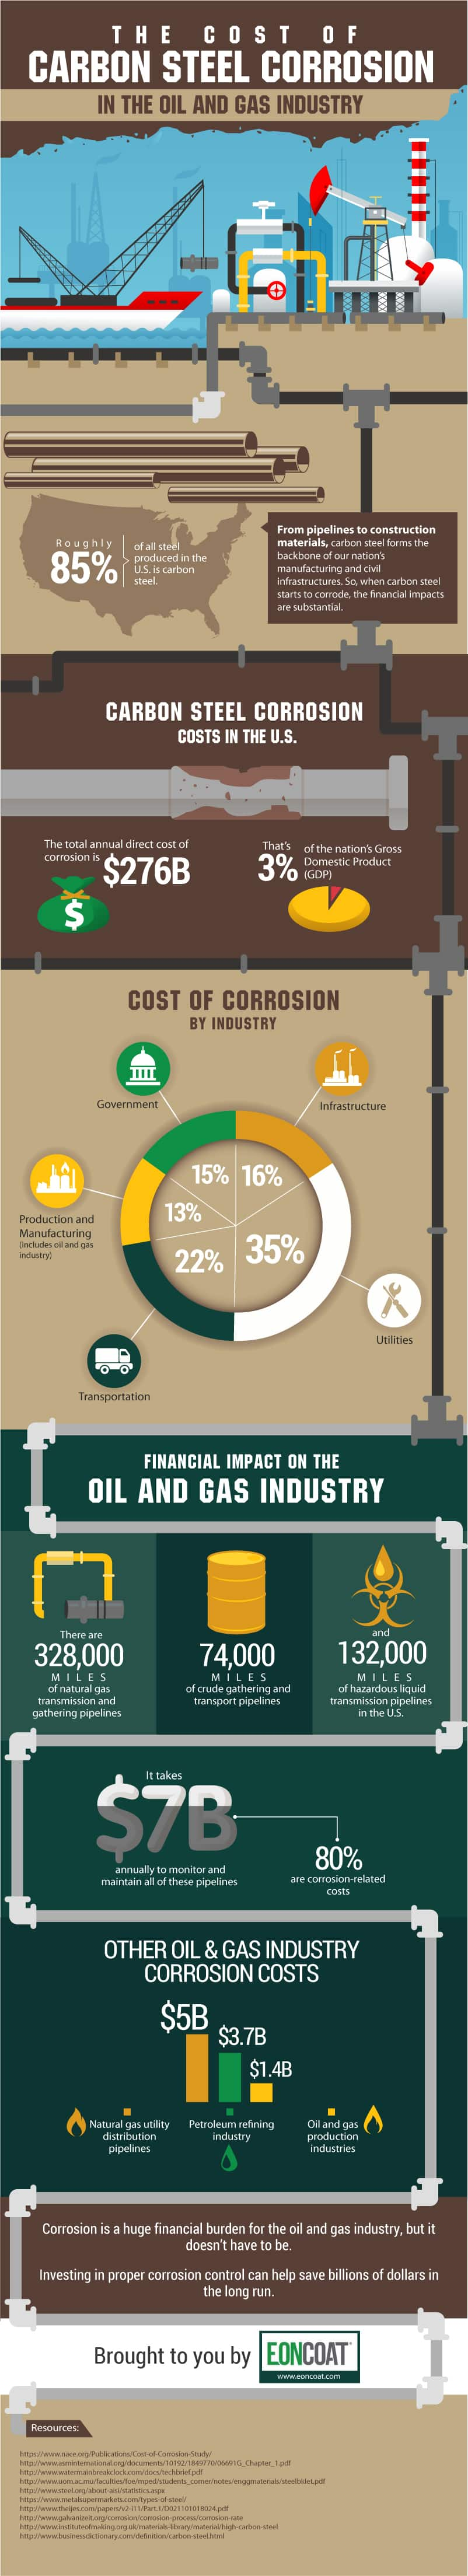 The Cost of Carbon Steel Corrosion in the Oil and Gas Industry [INFOGRAPHIC]